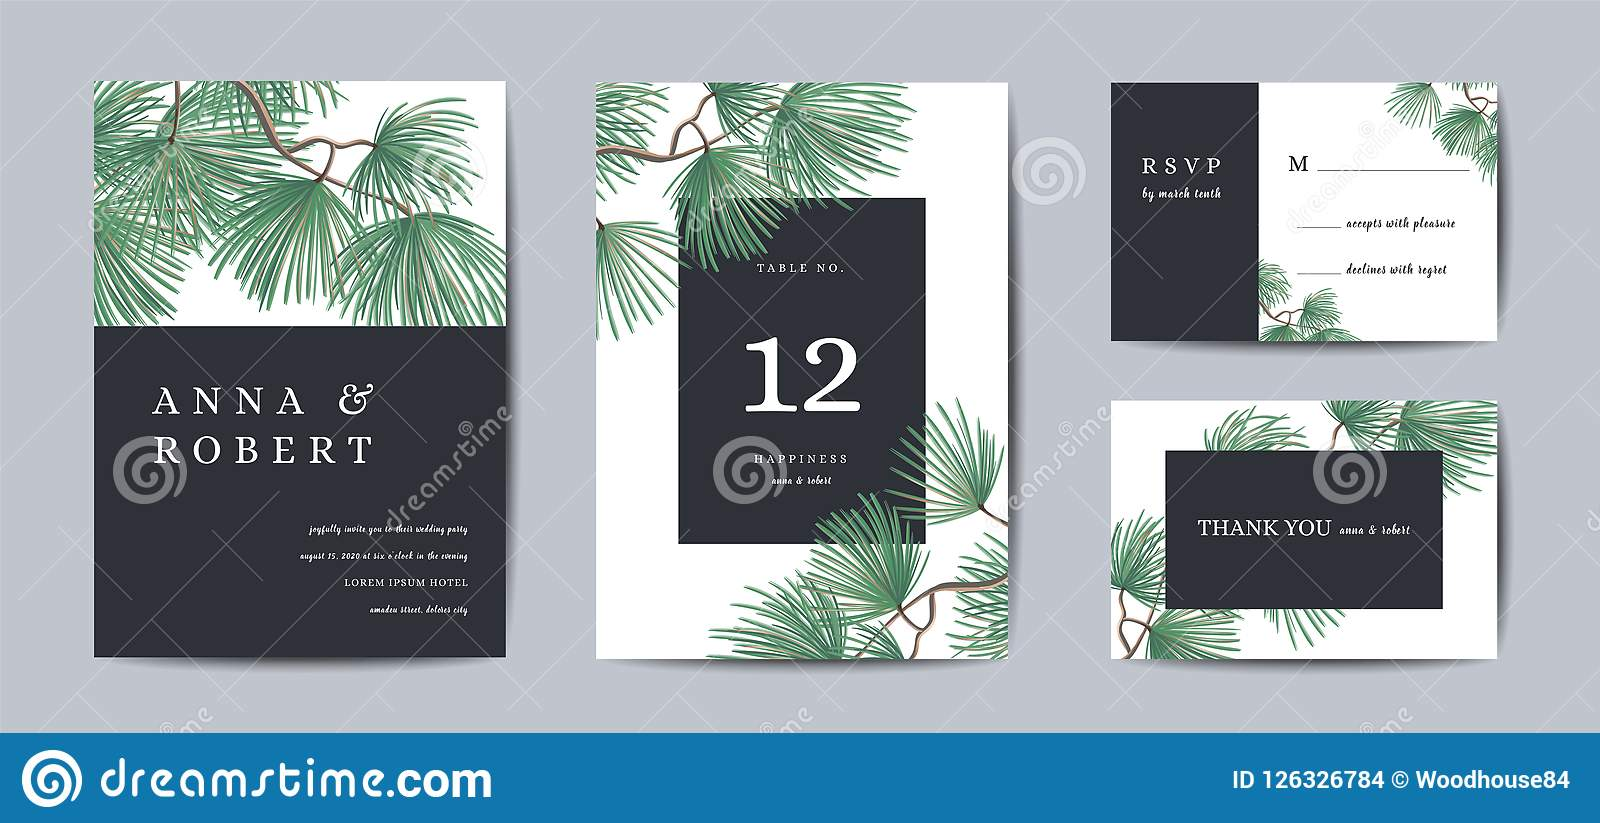 Botanical Wedding Invitation card Template Design, Pine Tree with Golden Foil, Christmas Greetings, Collection